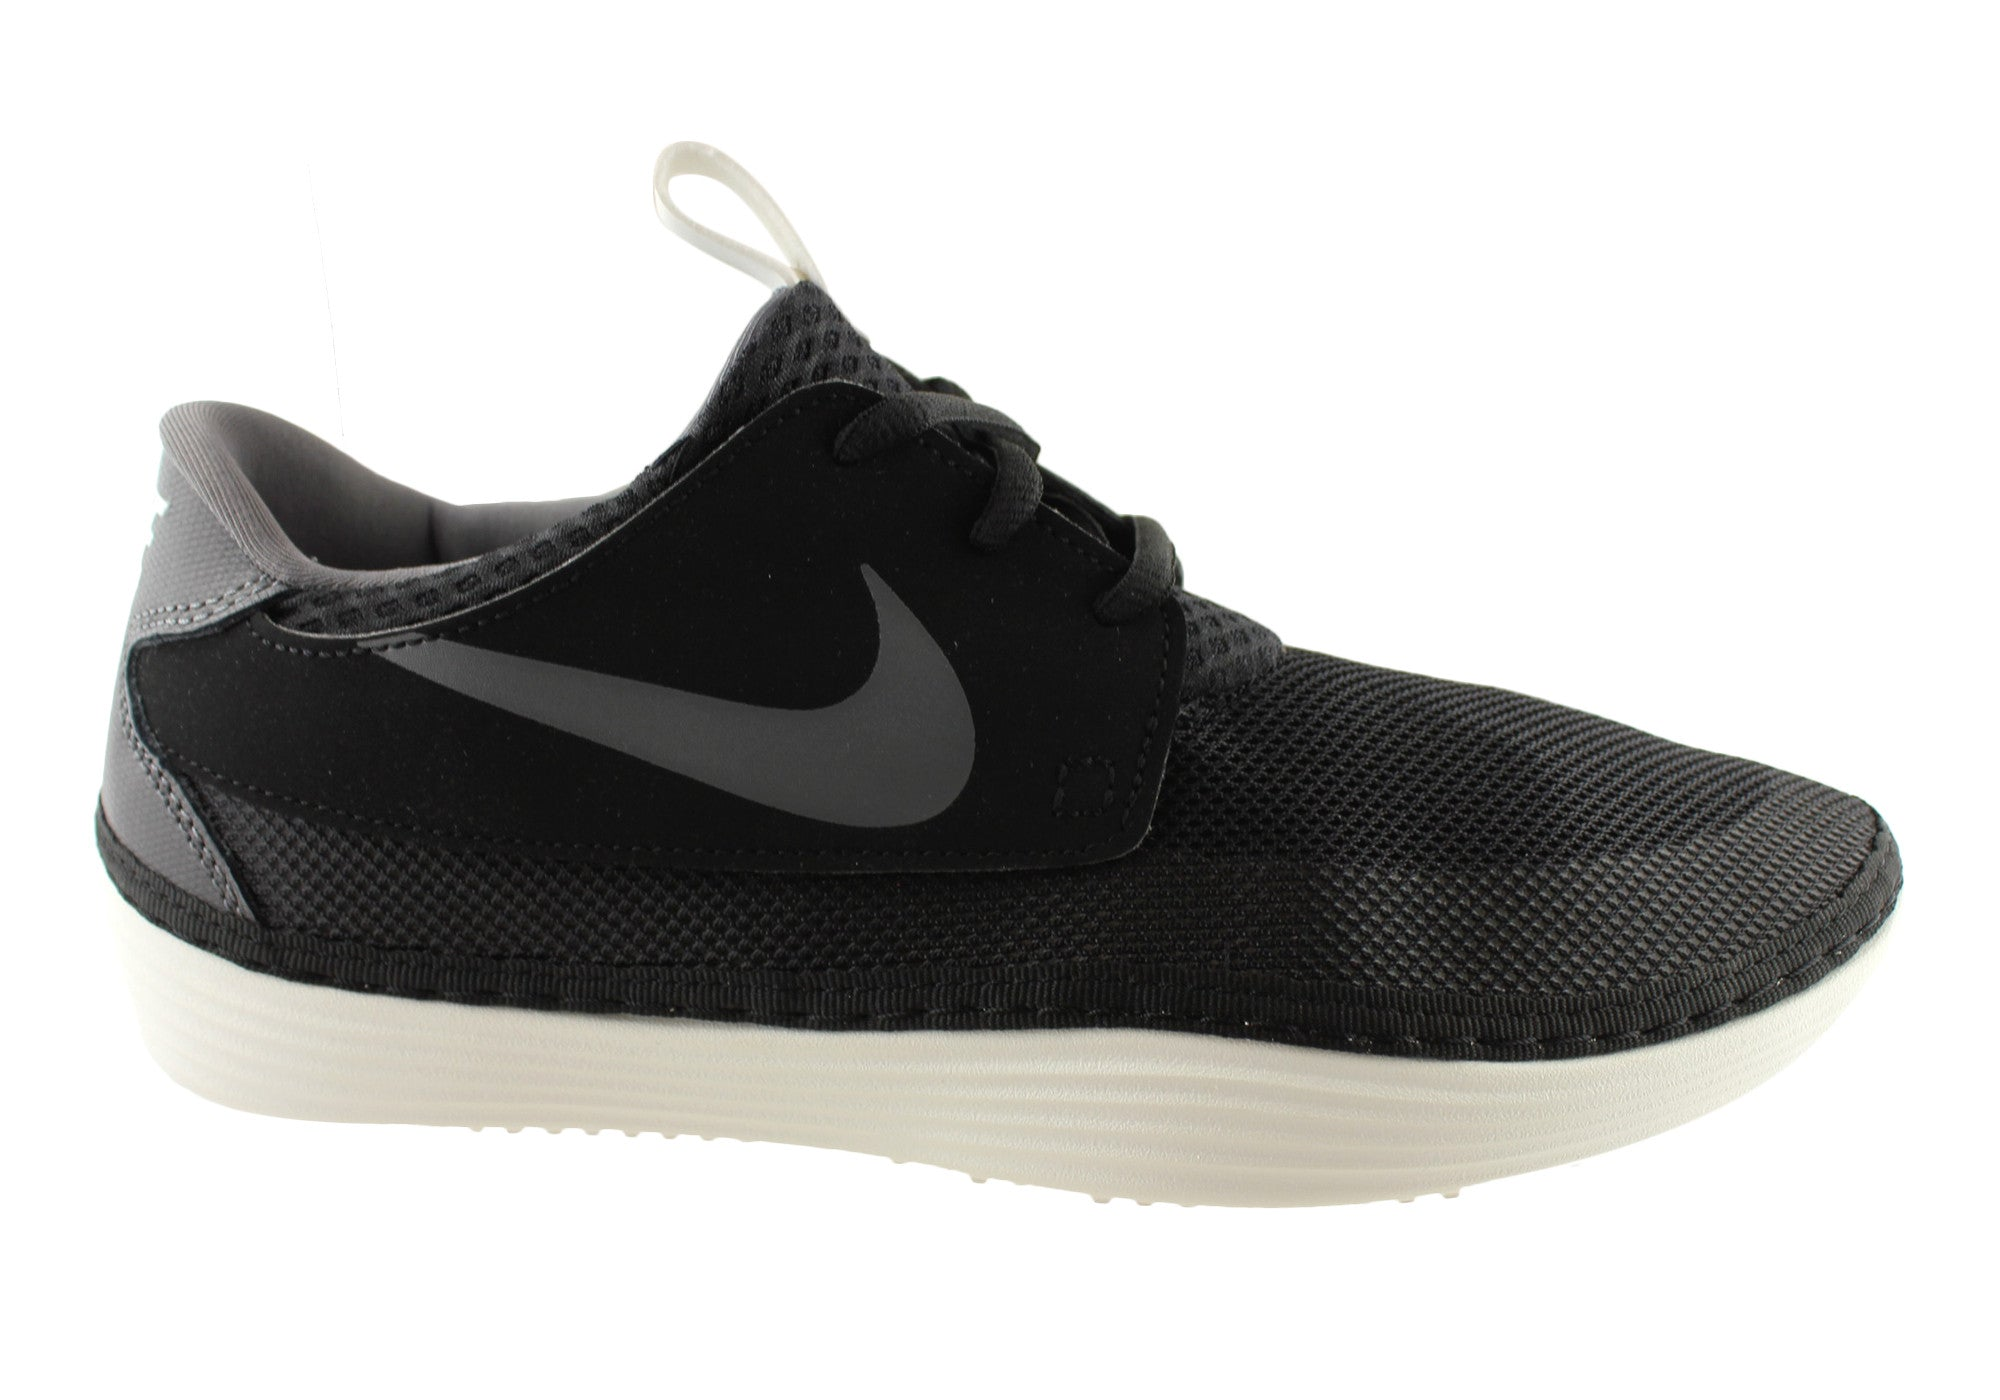 2772b430 Nike Solarsoft Moccasin Mens Casual/Sports Shoes | Brand House Direct